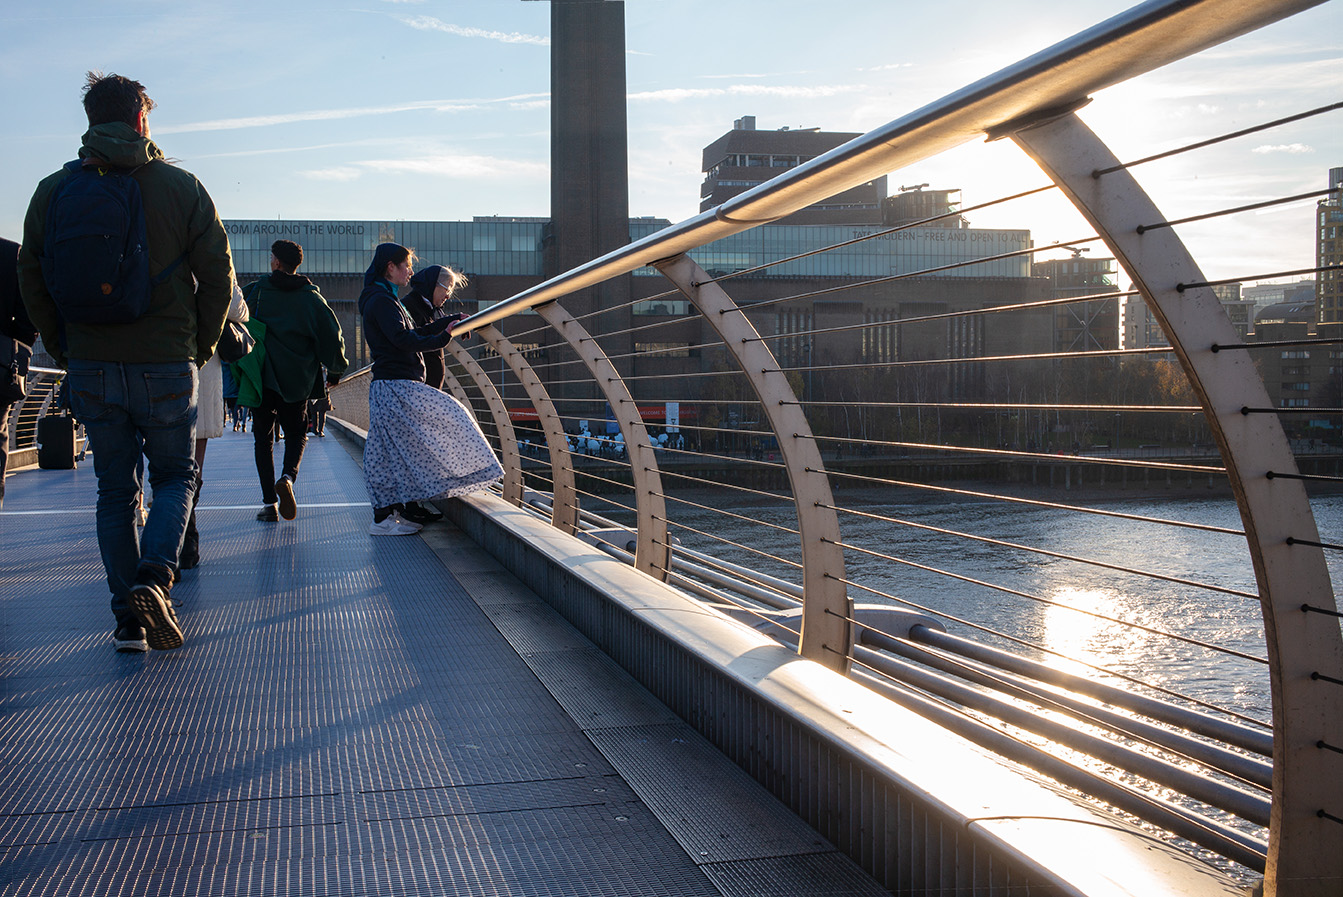 On the Millennium Bridge in London